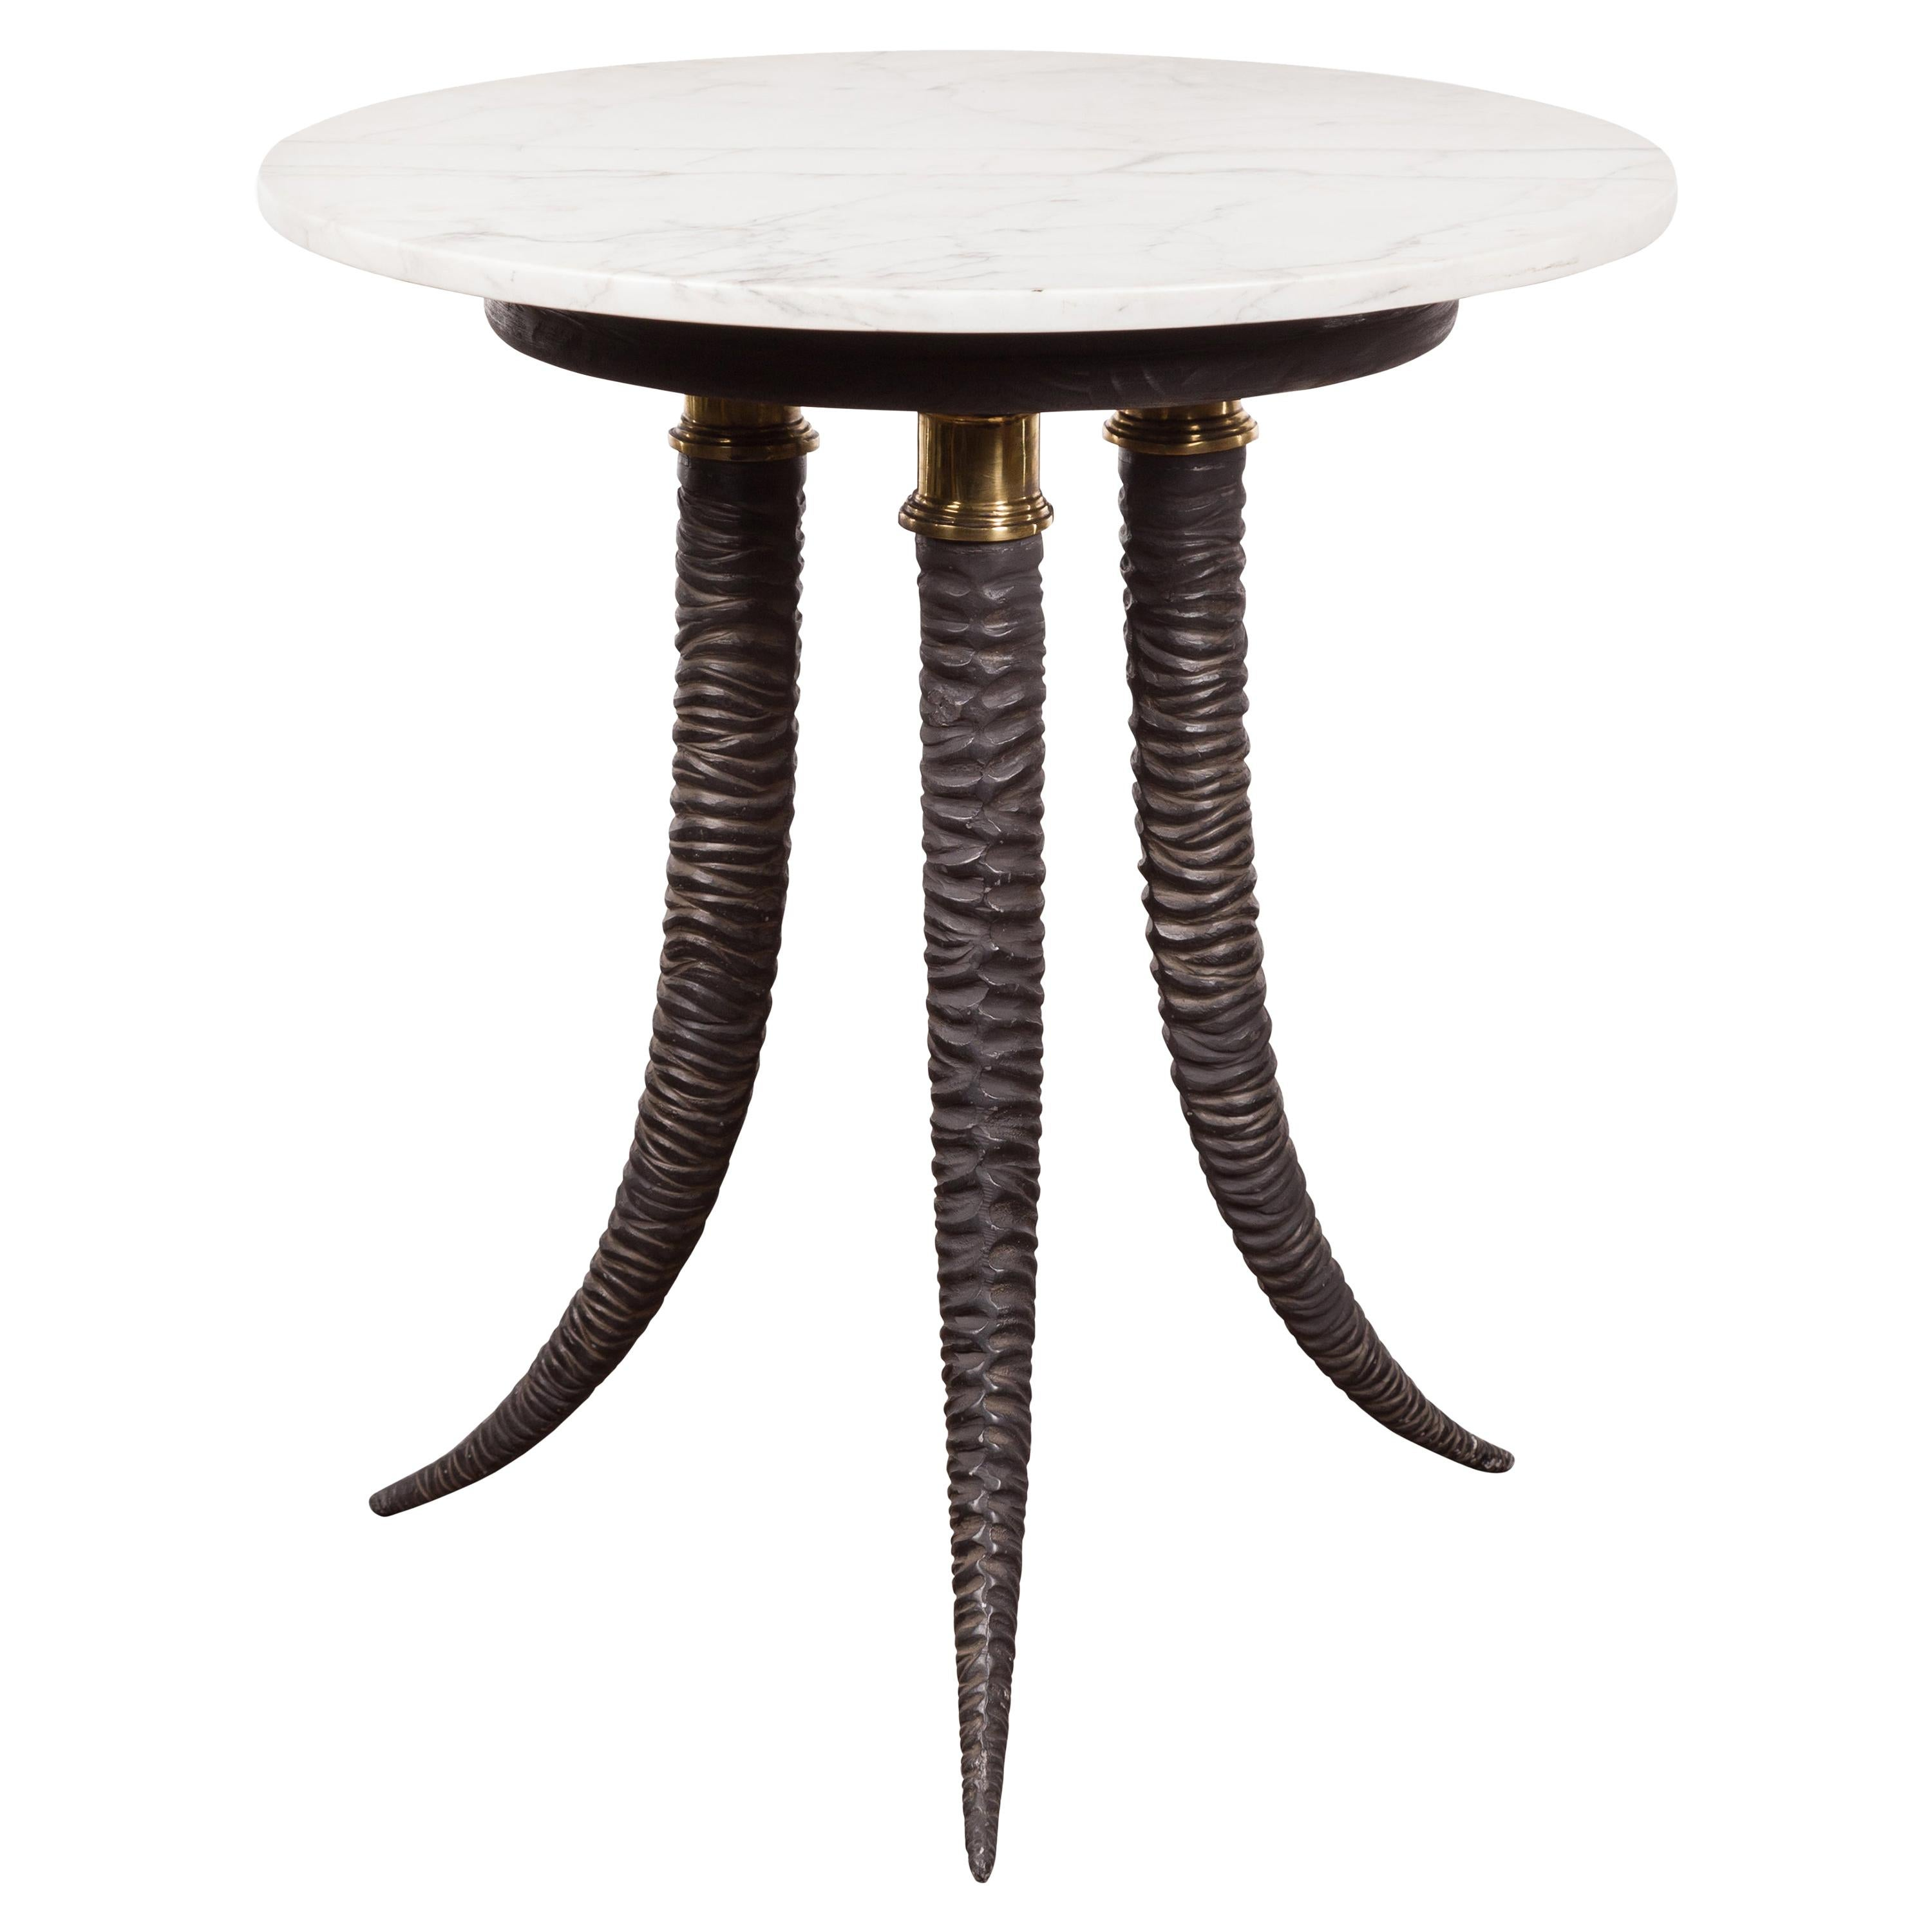 Italian Midcentury Table with Horn Style Tripod Base and White Marble Top